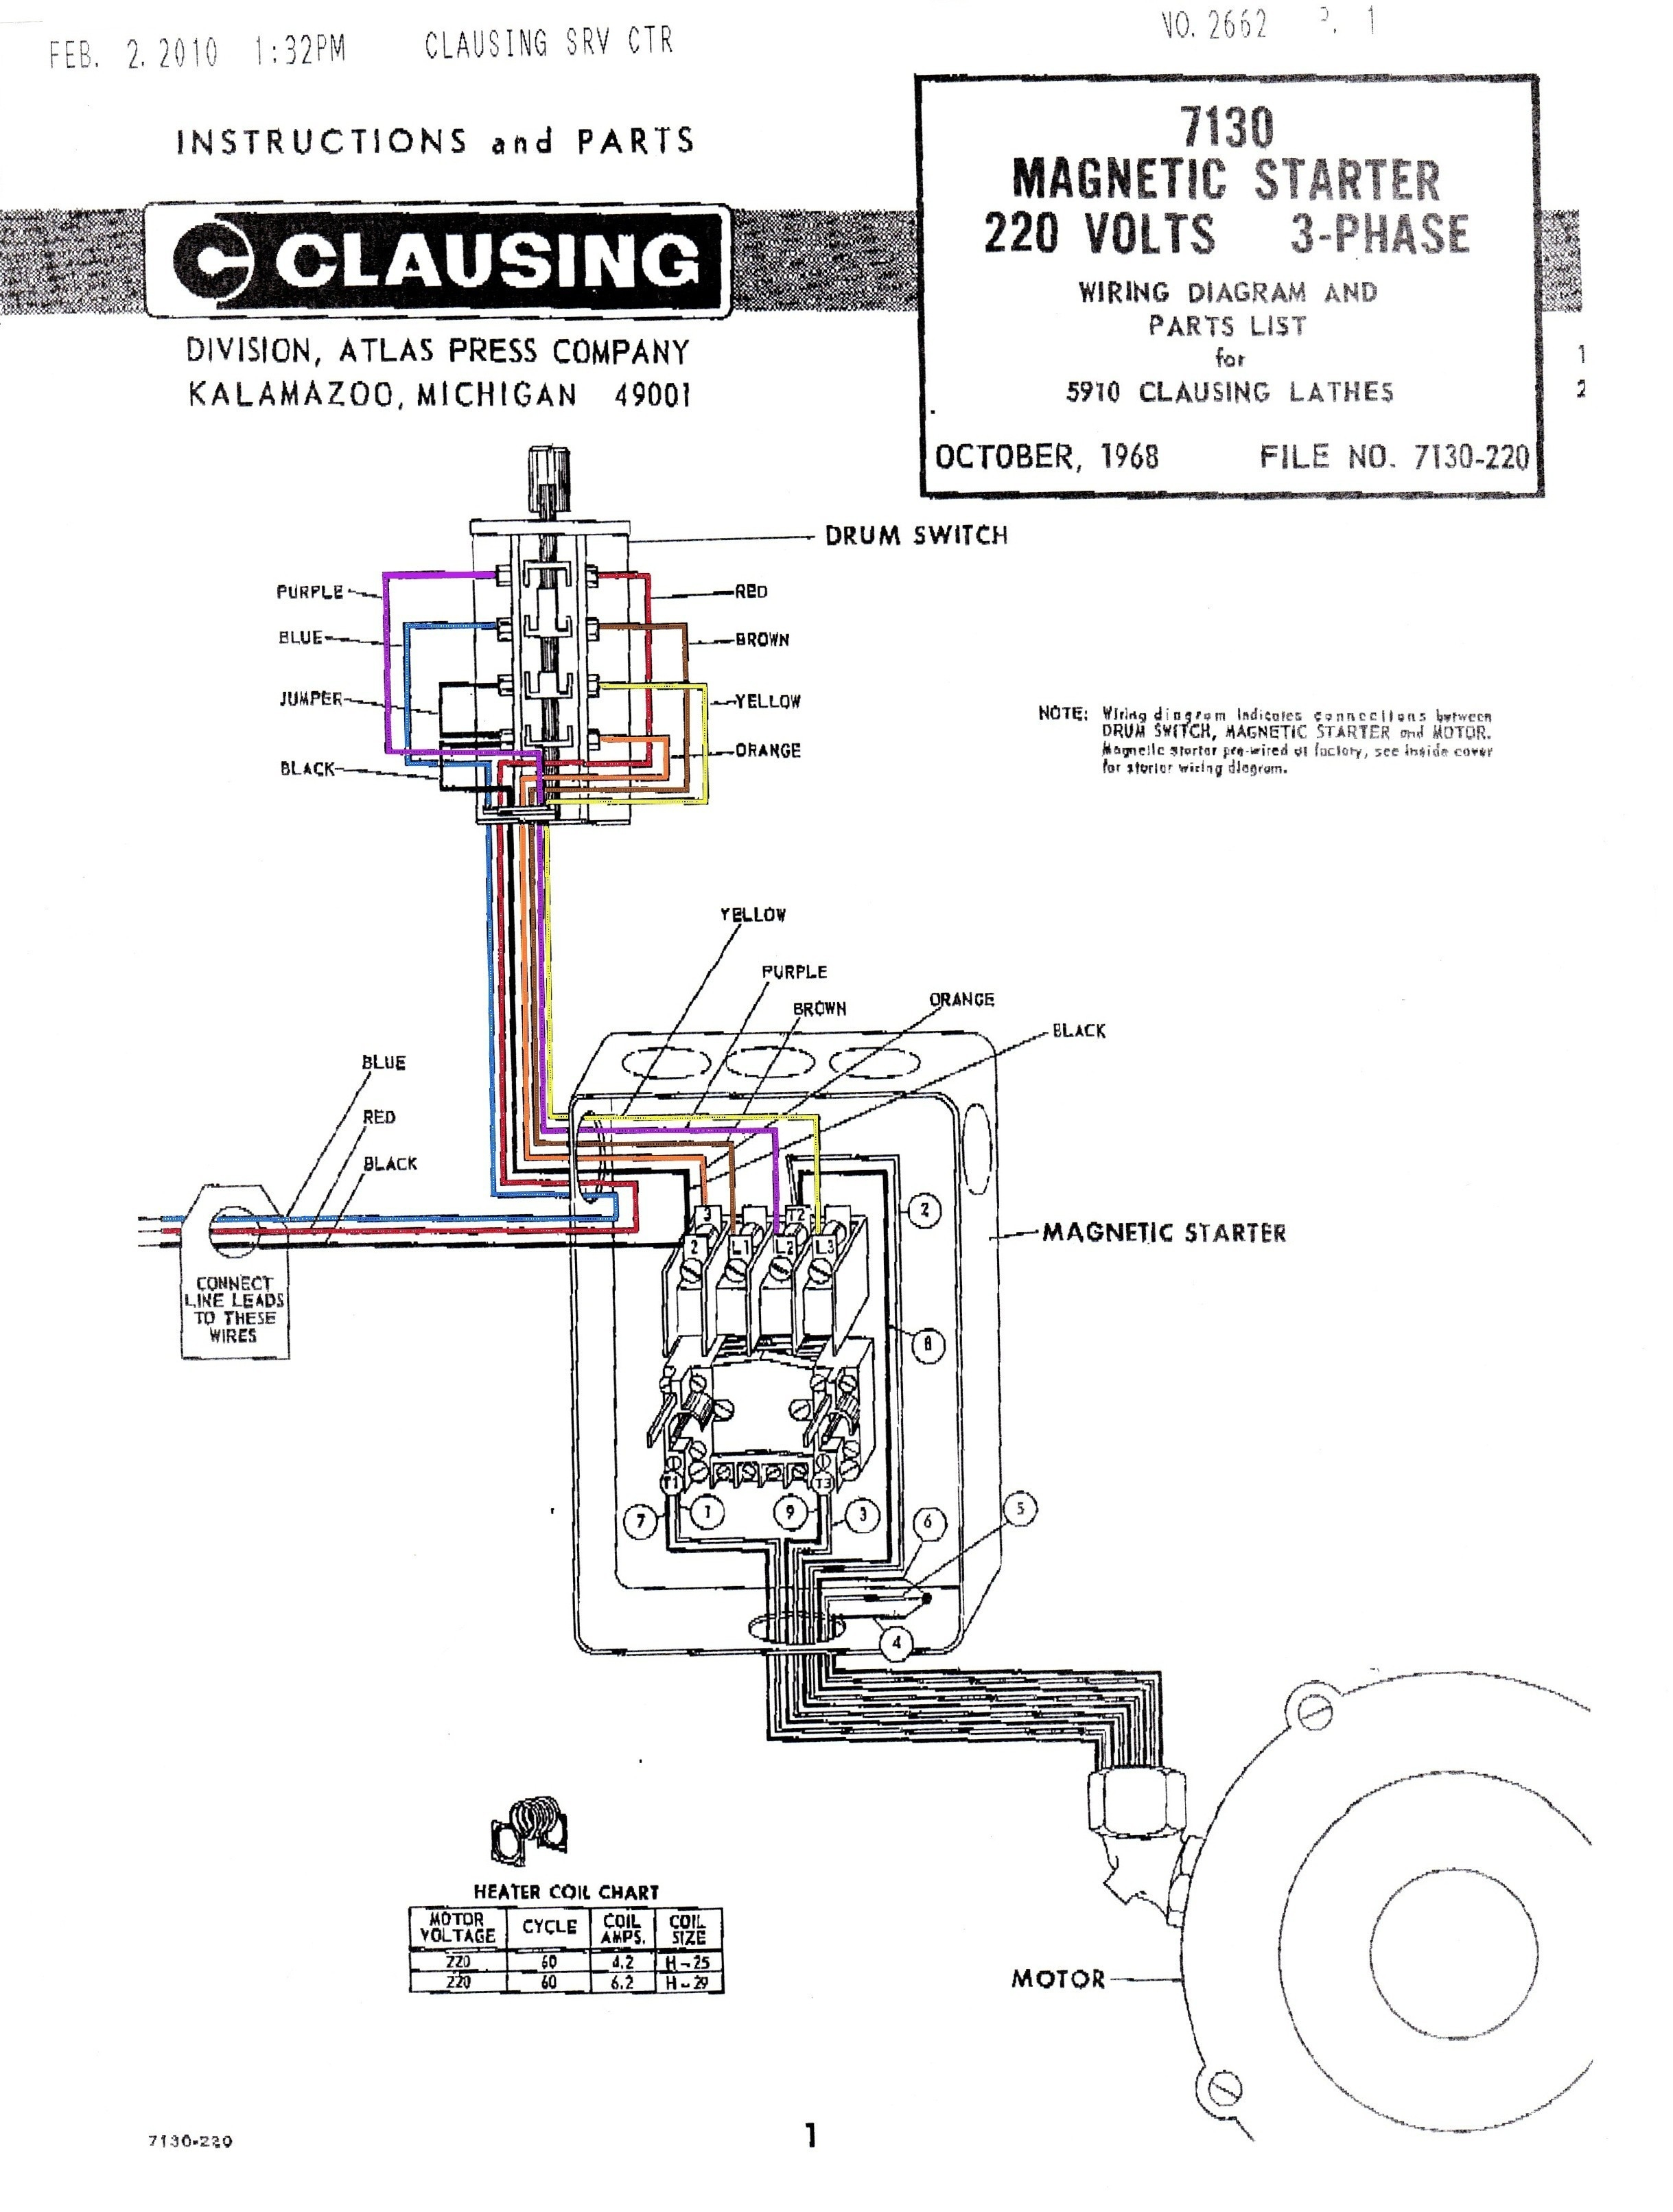 Siemens Motor Control Center Wiring Diagram